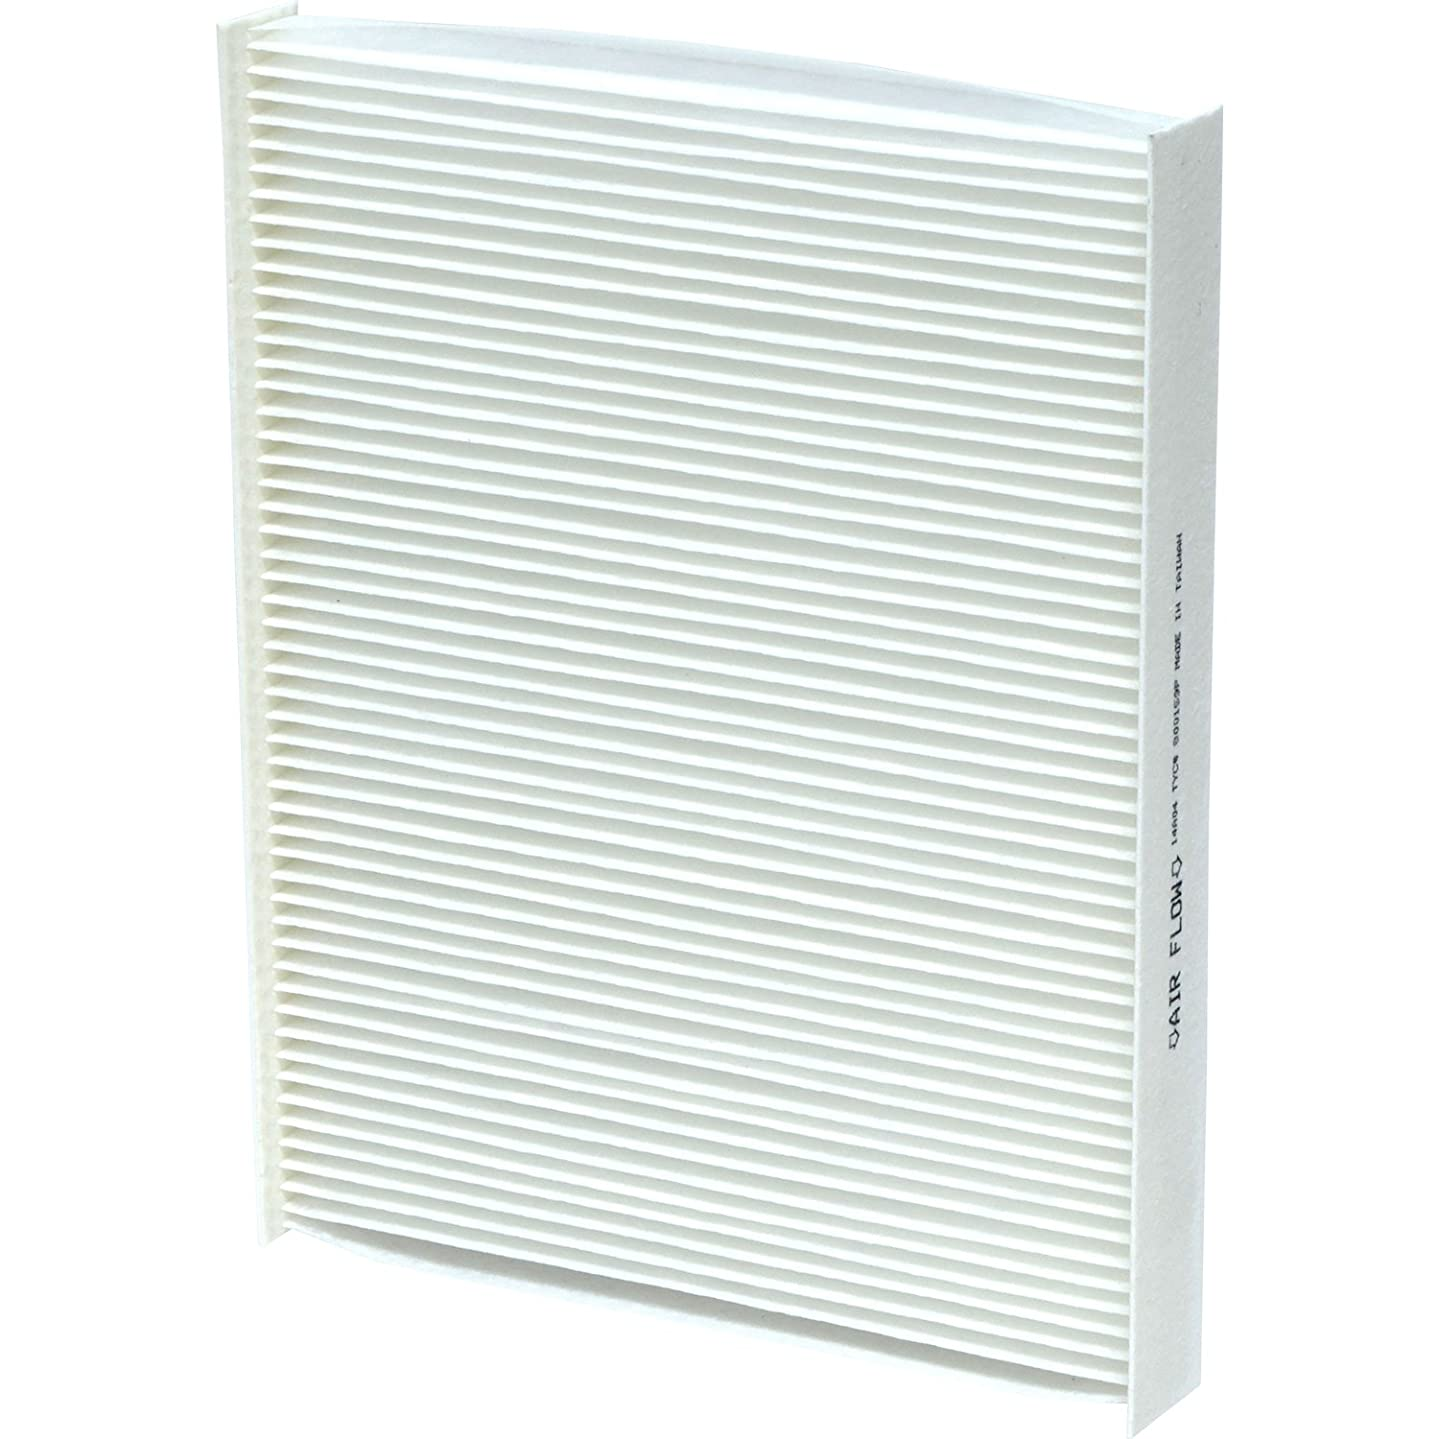 Universal Air Conditioner FI 1277C Cabin Air Filter